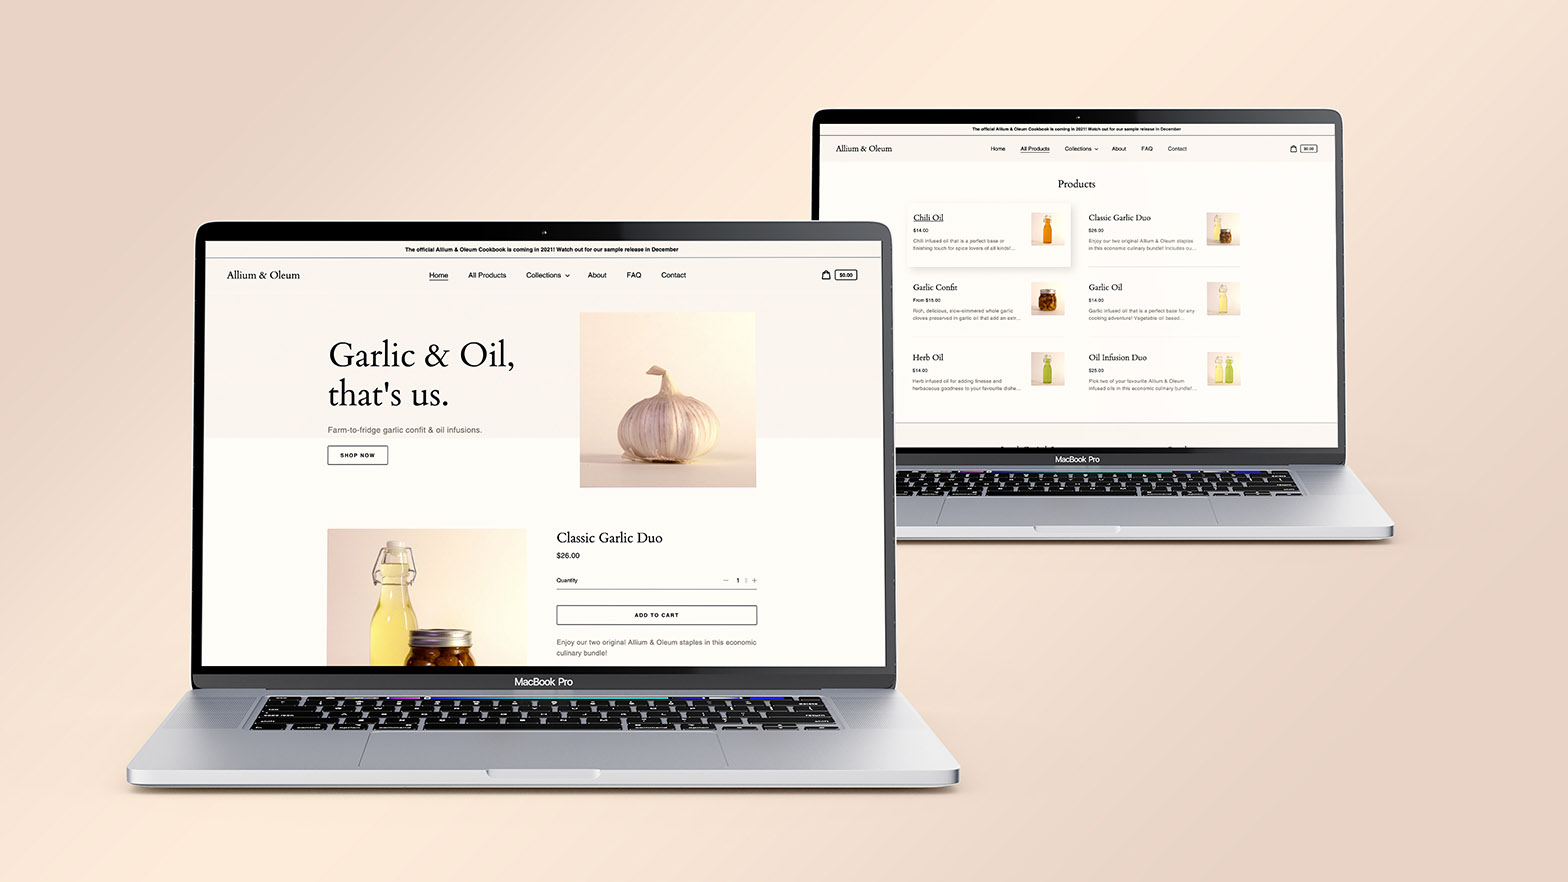 A shopify site designed and built for the sale of chef-quality garlic confit and oil infusions.